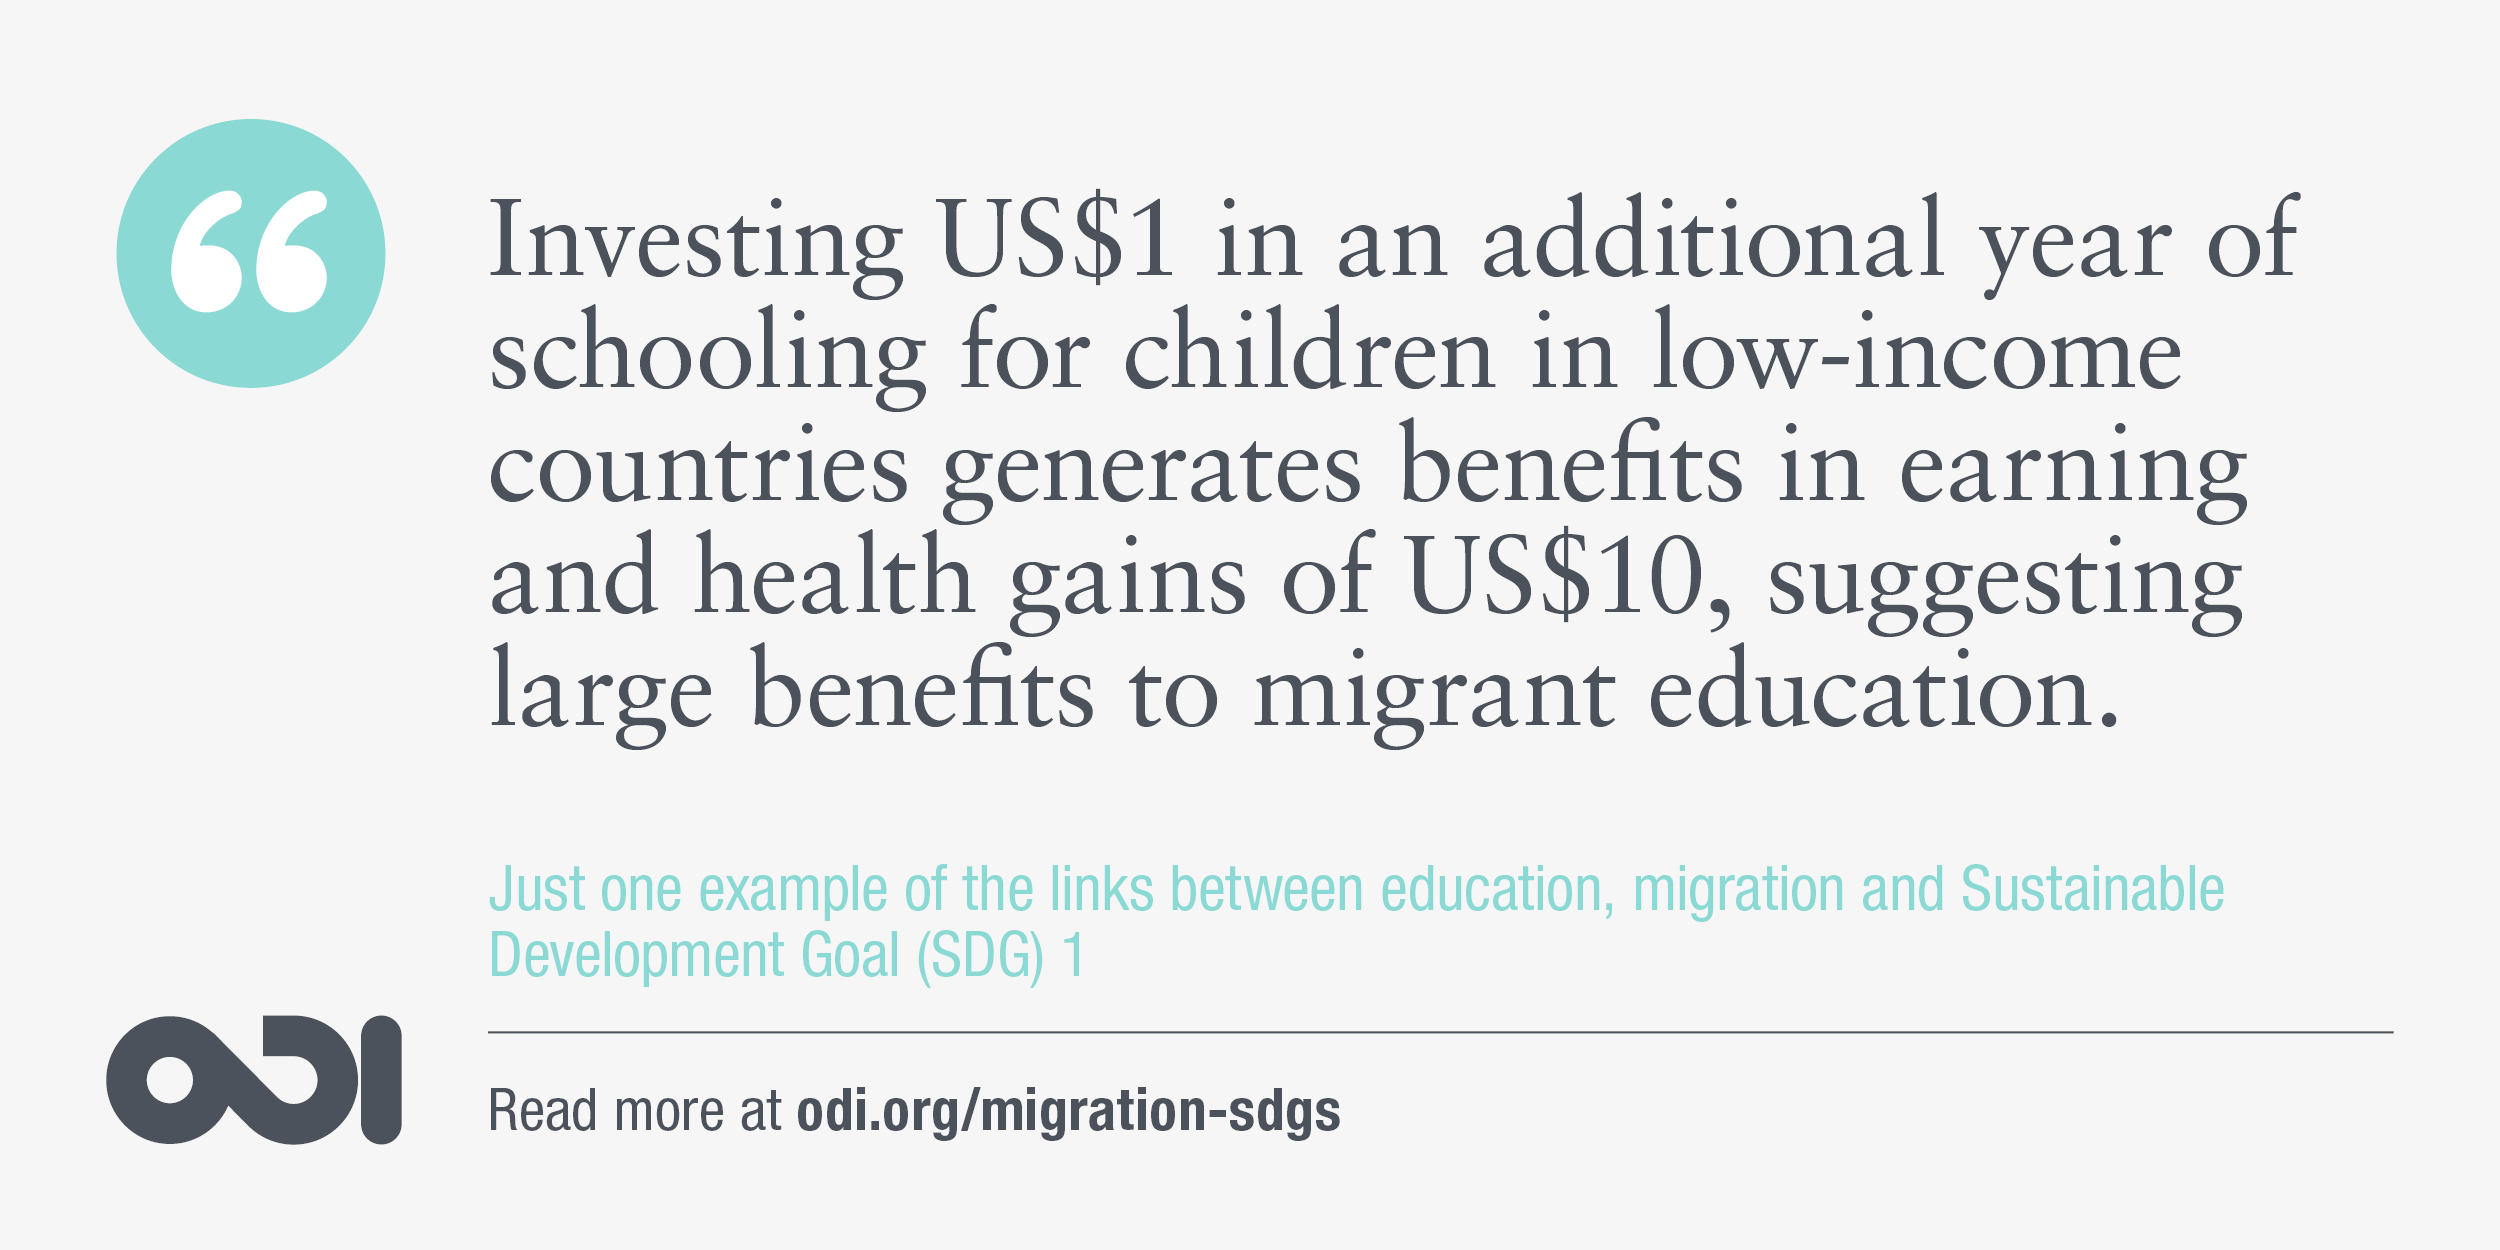 The links between education, migration and SDG 1.